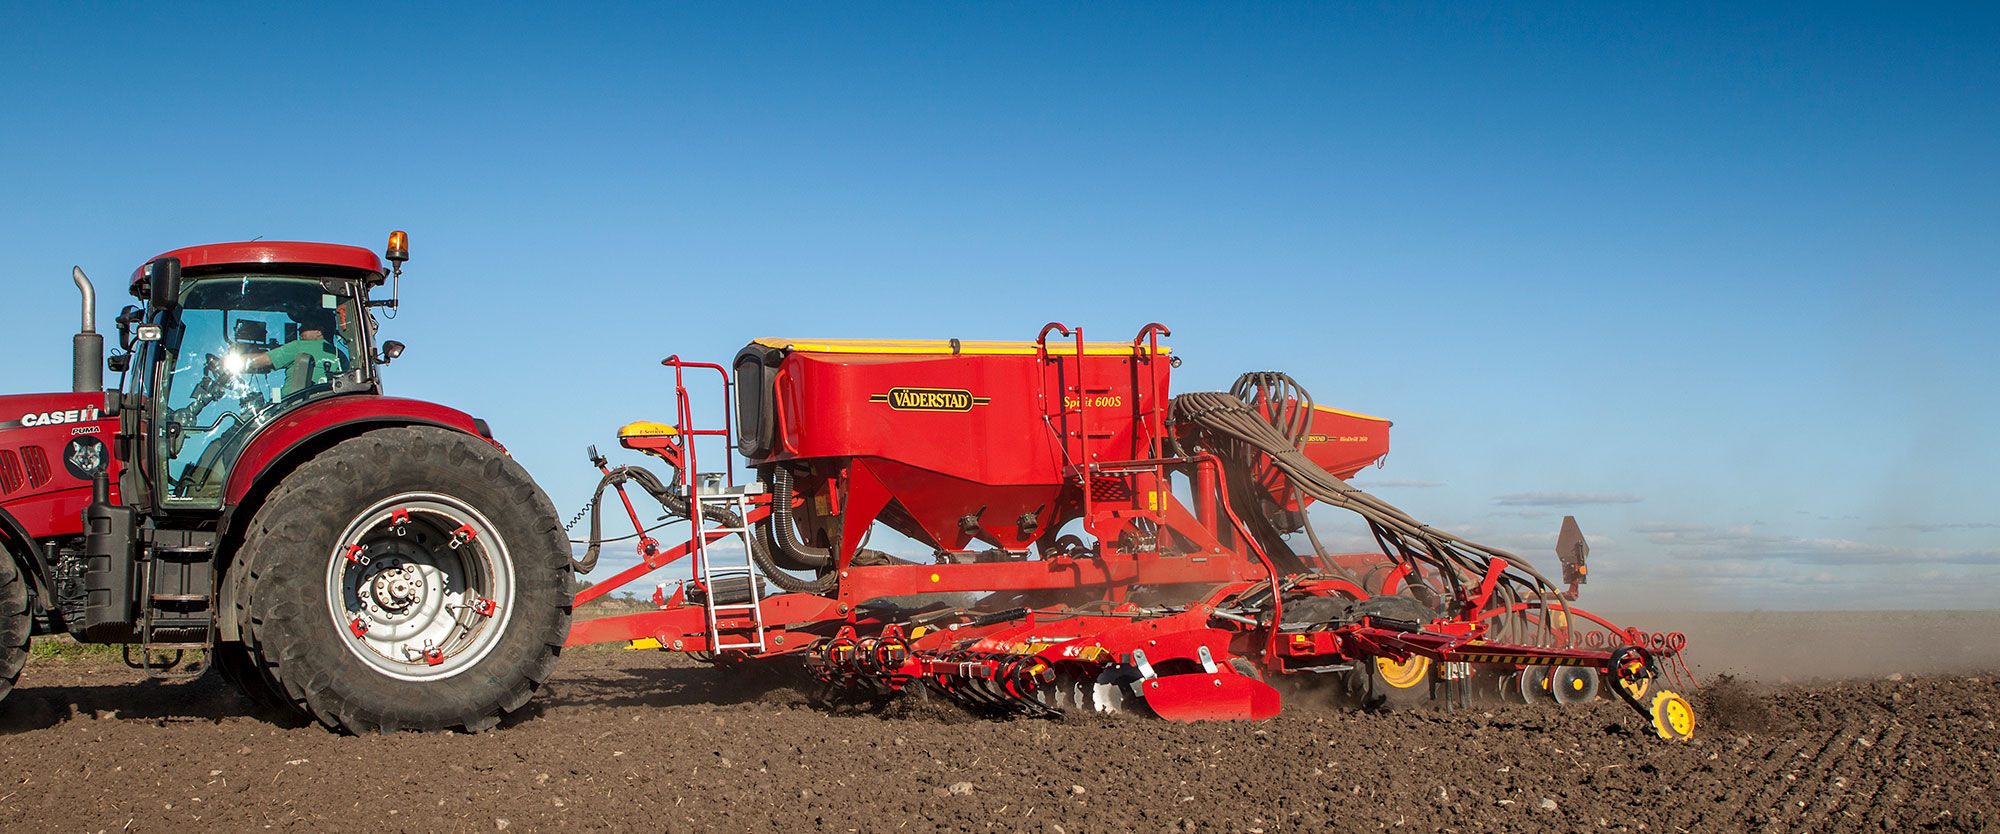 Väderstad seed drill Spirit 600S in field